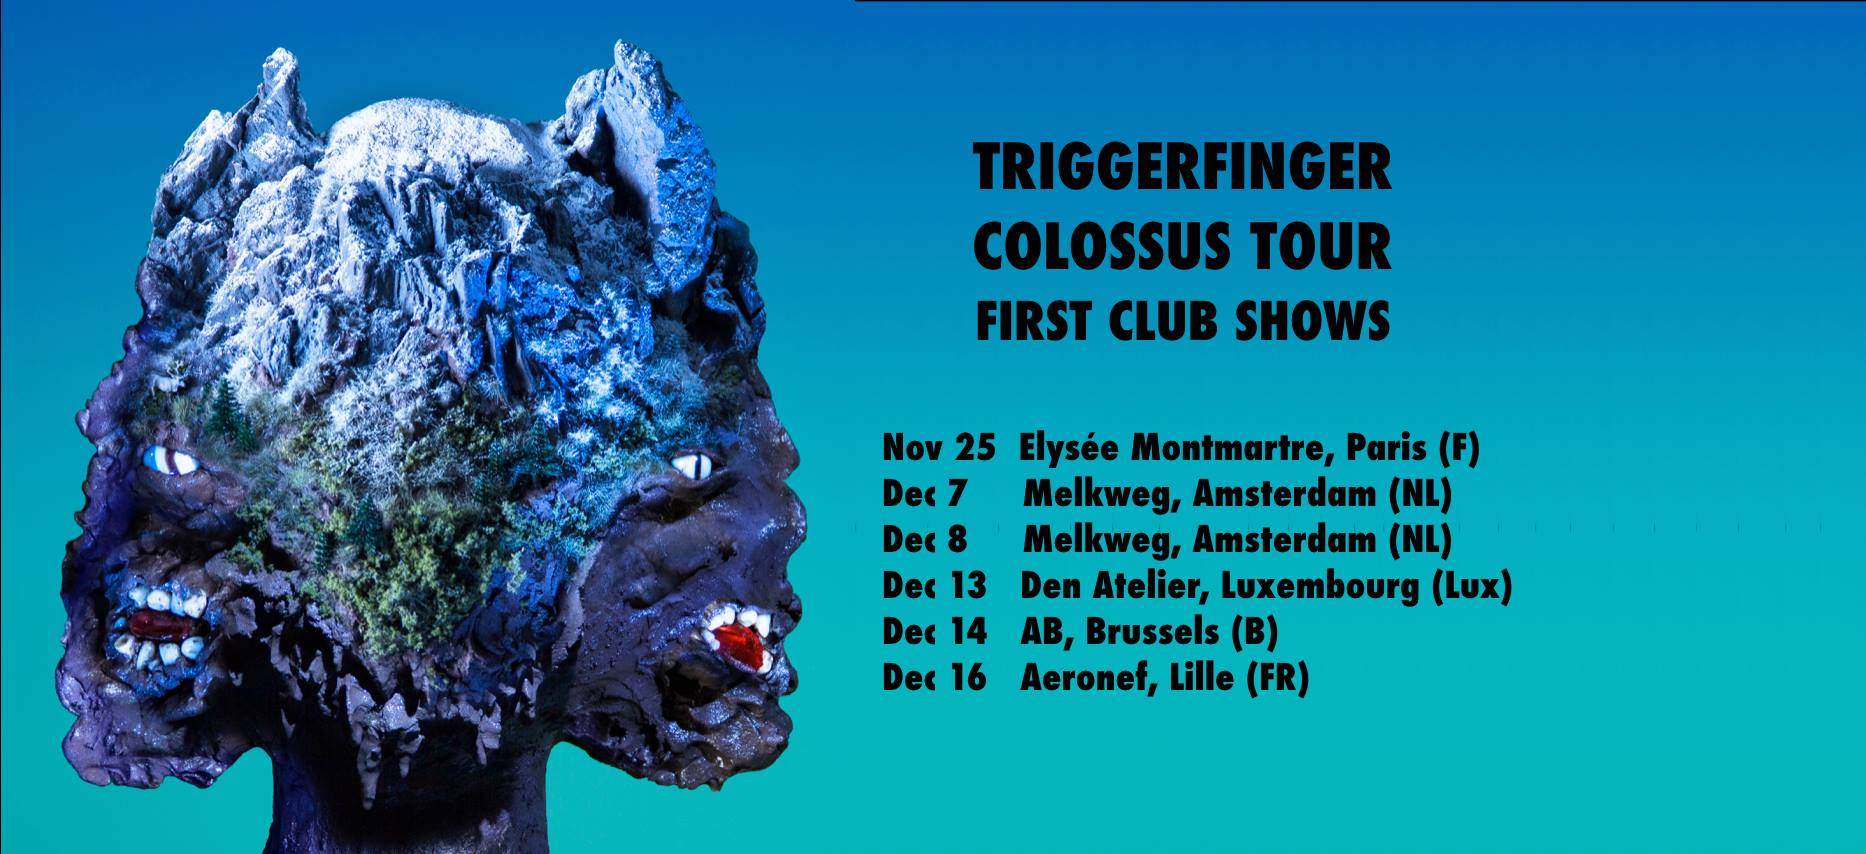 Triggerfinger Colossus Tour